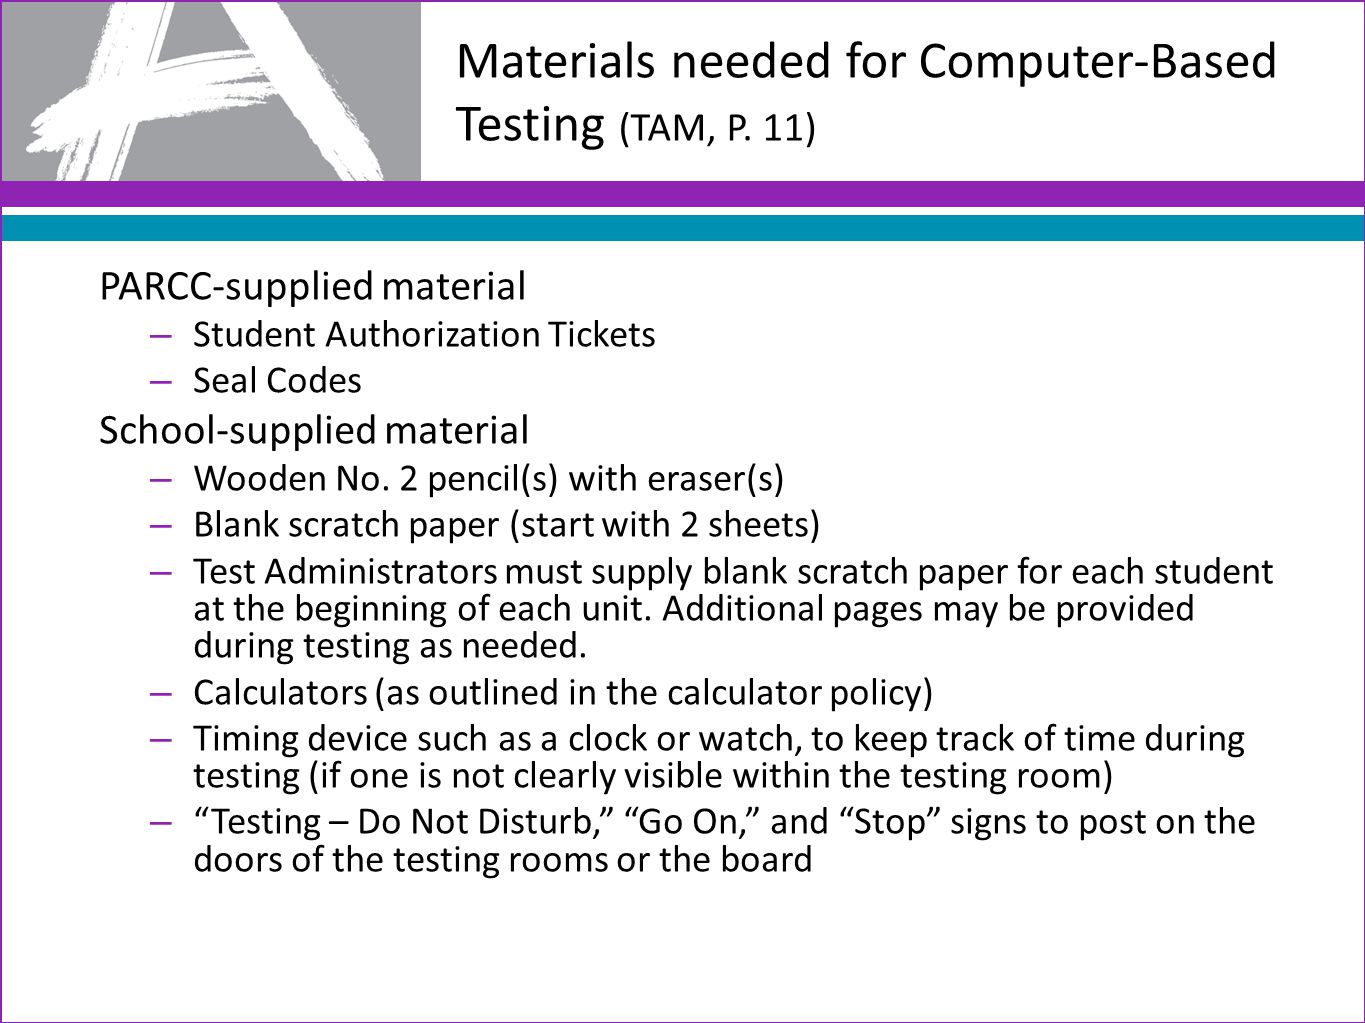 Materials needed for Computer-Based Testing (TAM, P.